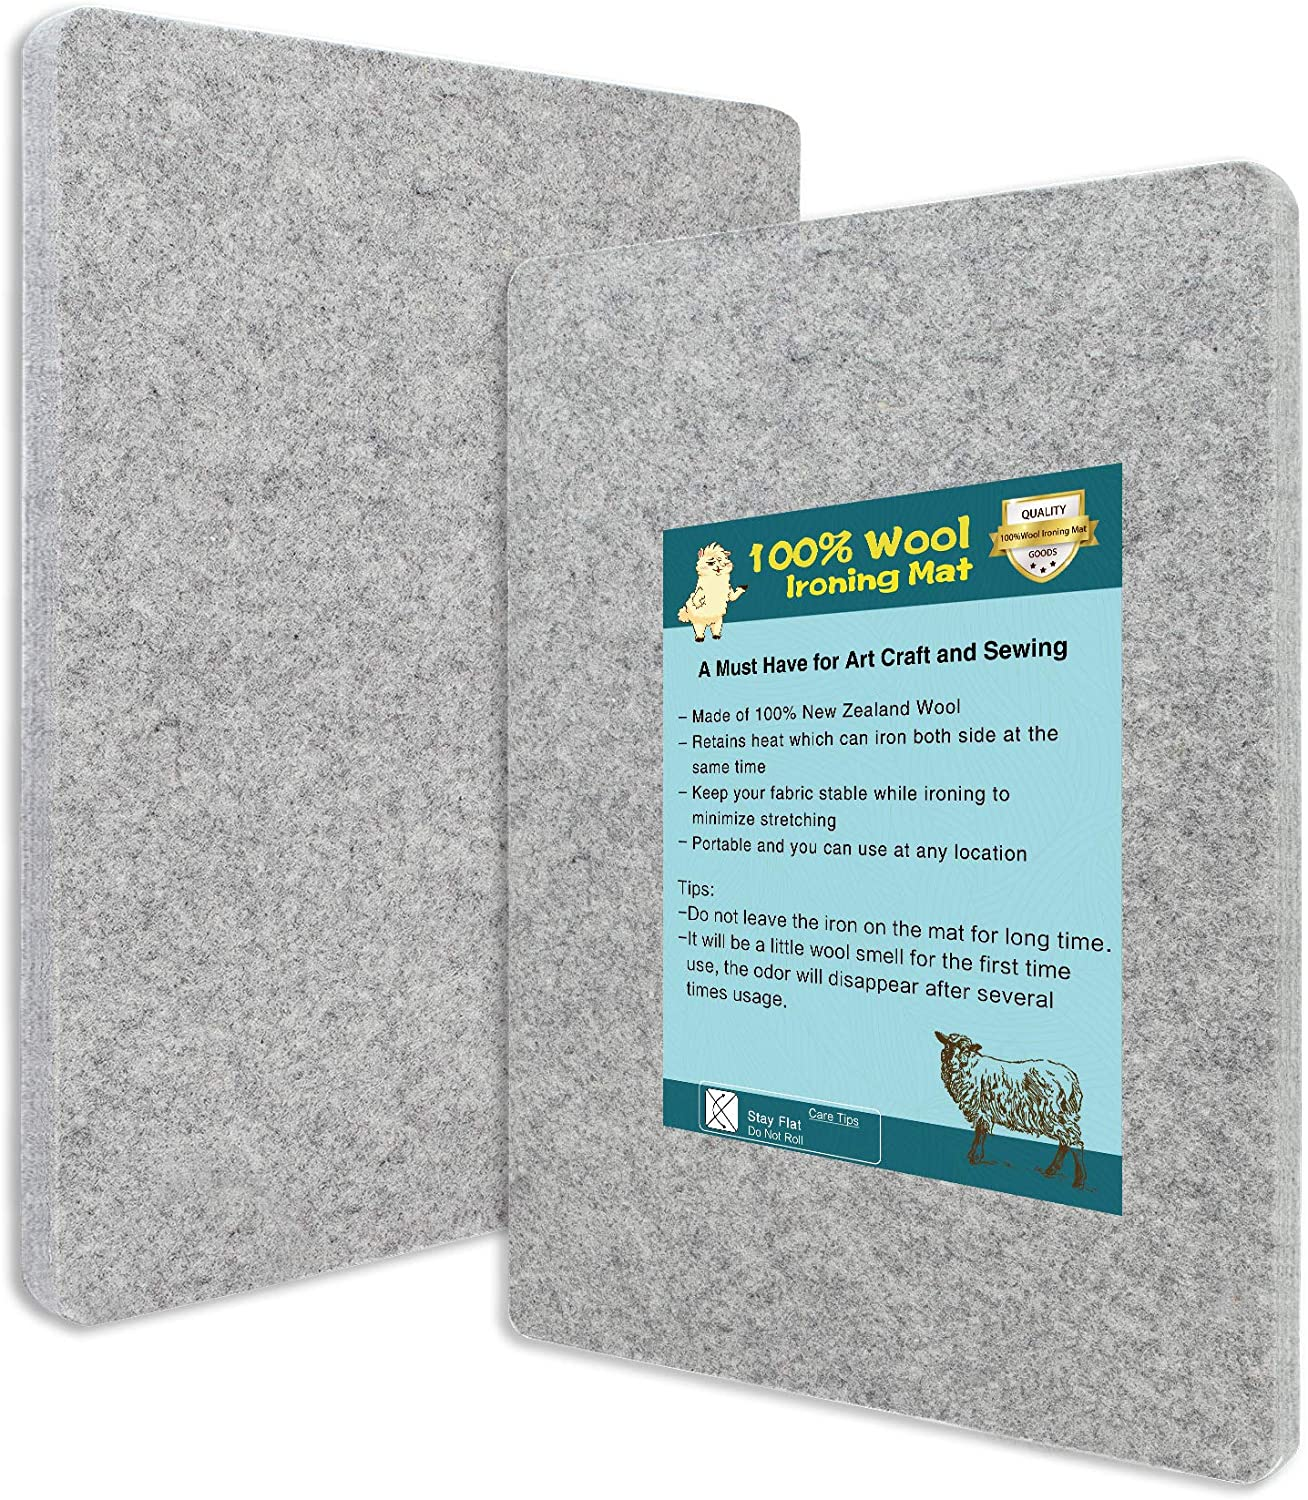 13.5 X 13.5-Wool Pressing Mat for Quilting-New Zealand Wool Ironing Mat-Portable for Quilting,Sewing,Pressing Seams,Embroidery Crafts Perfect